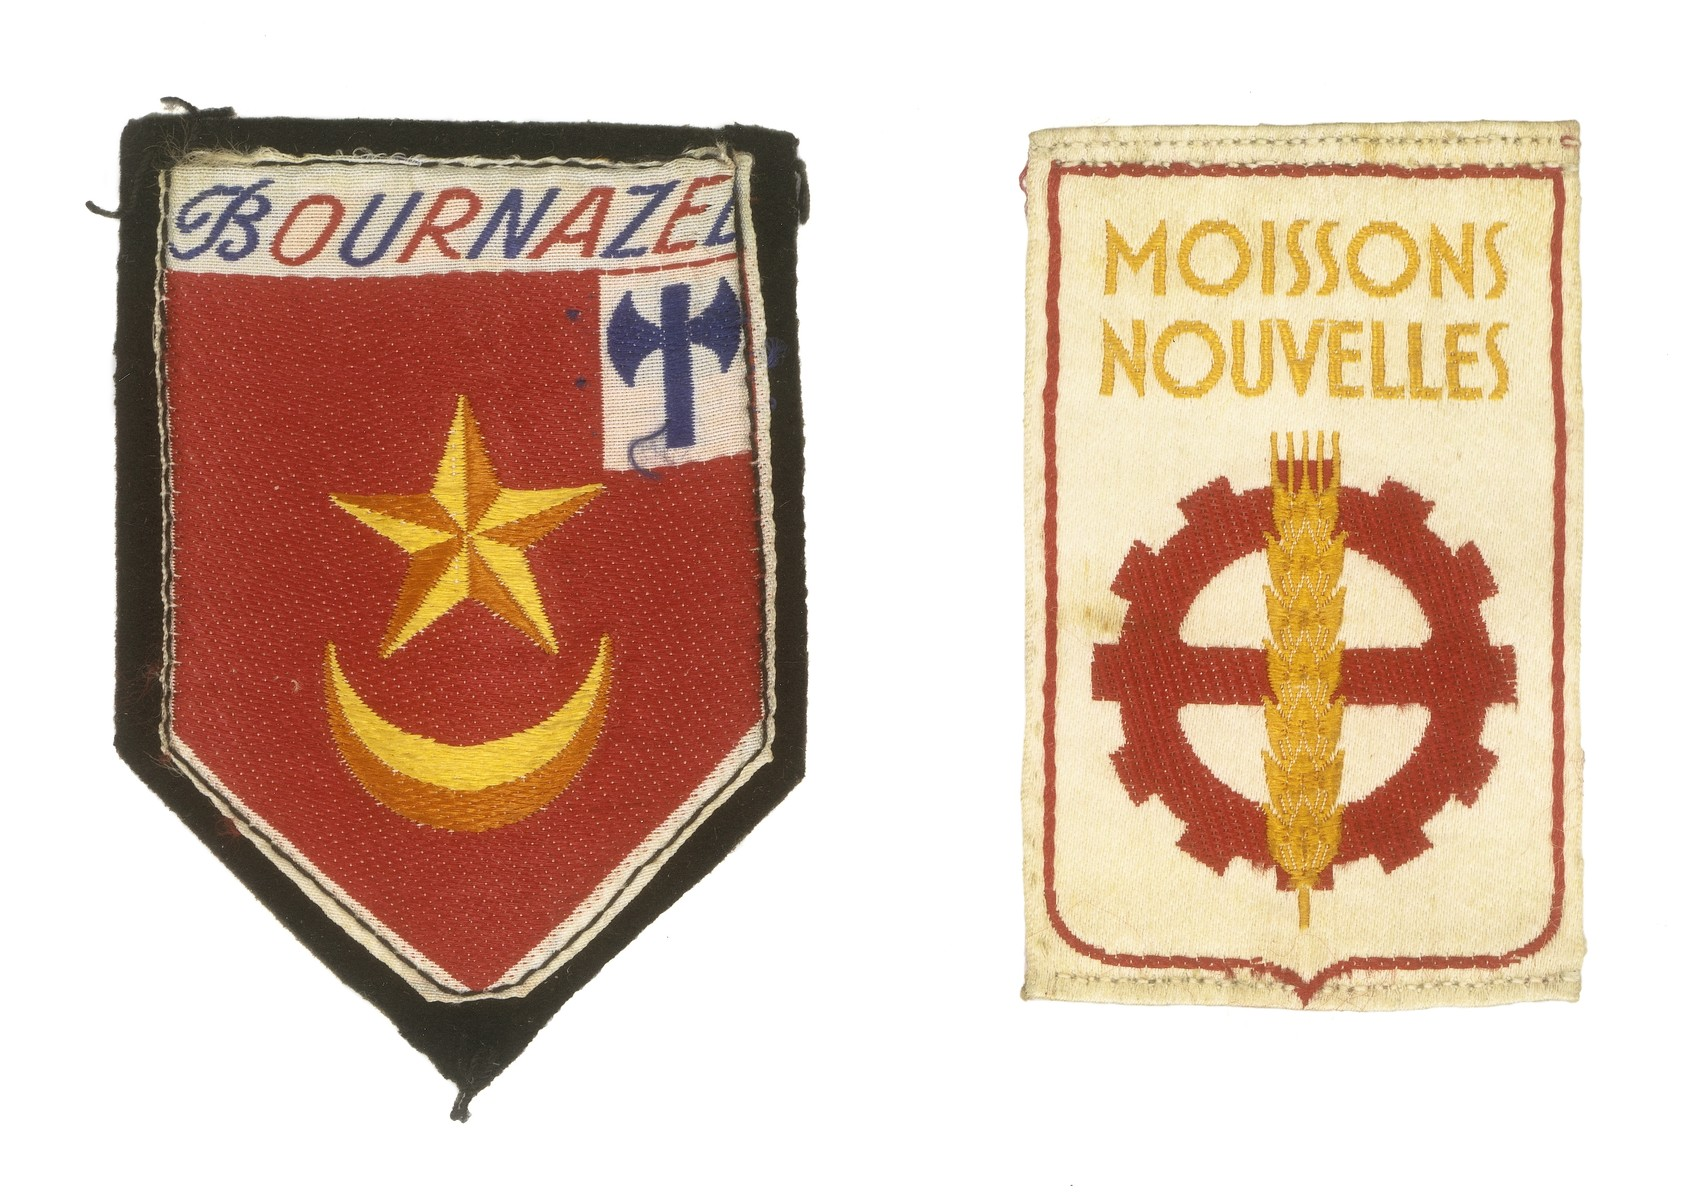 Two insignia from the uniform of the Vichy fascist youth movement, Moisson Nouvelles.